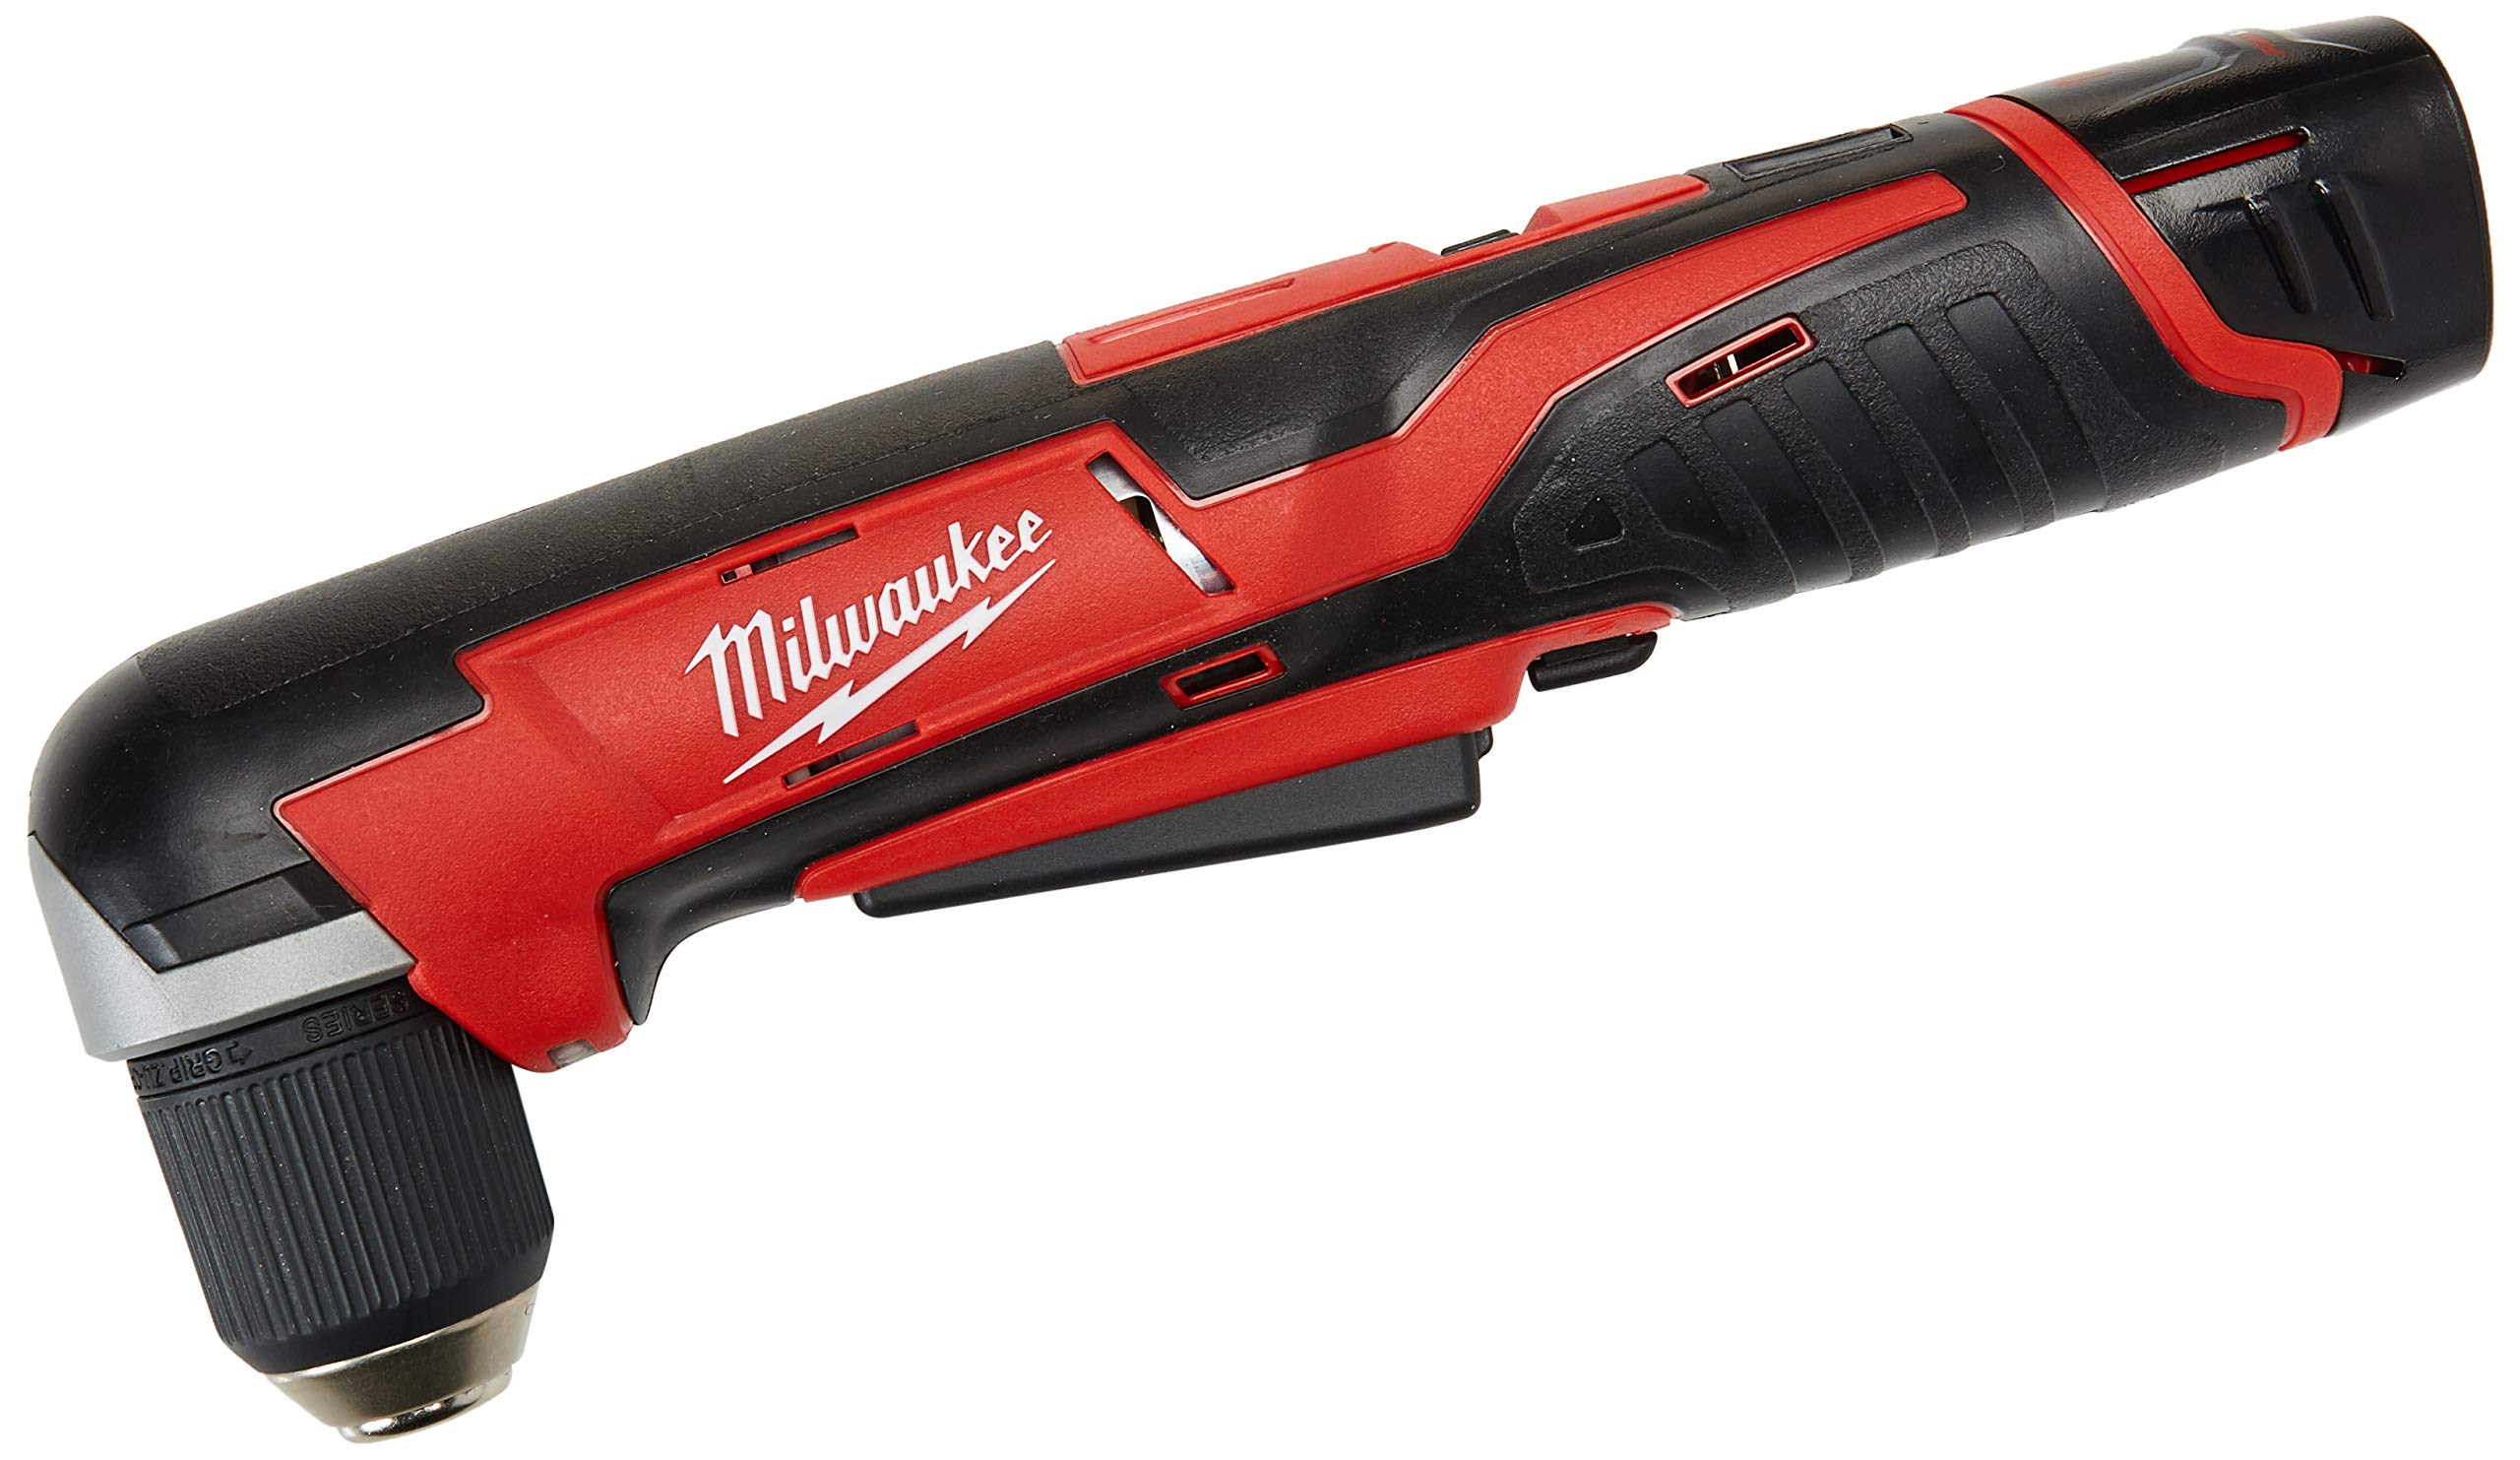 Milwaukee 2415-21 M12 12V 3/8'' Cordless Right Angle Drill/Driver Kit by Milwaukee